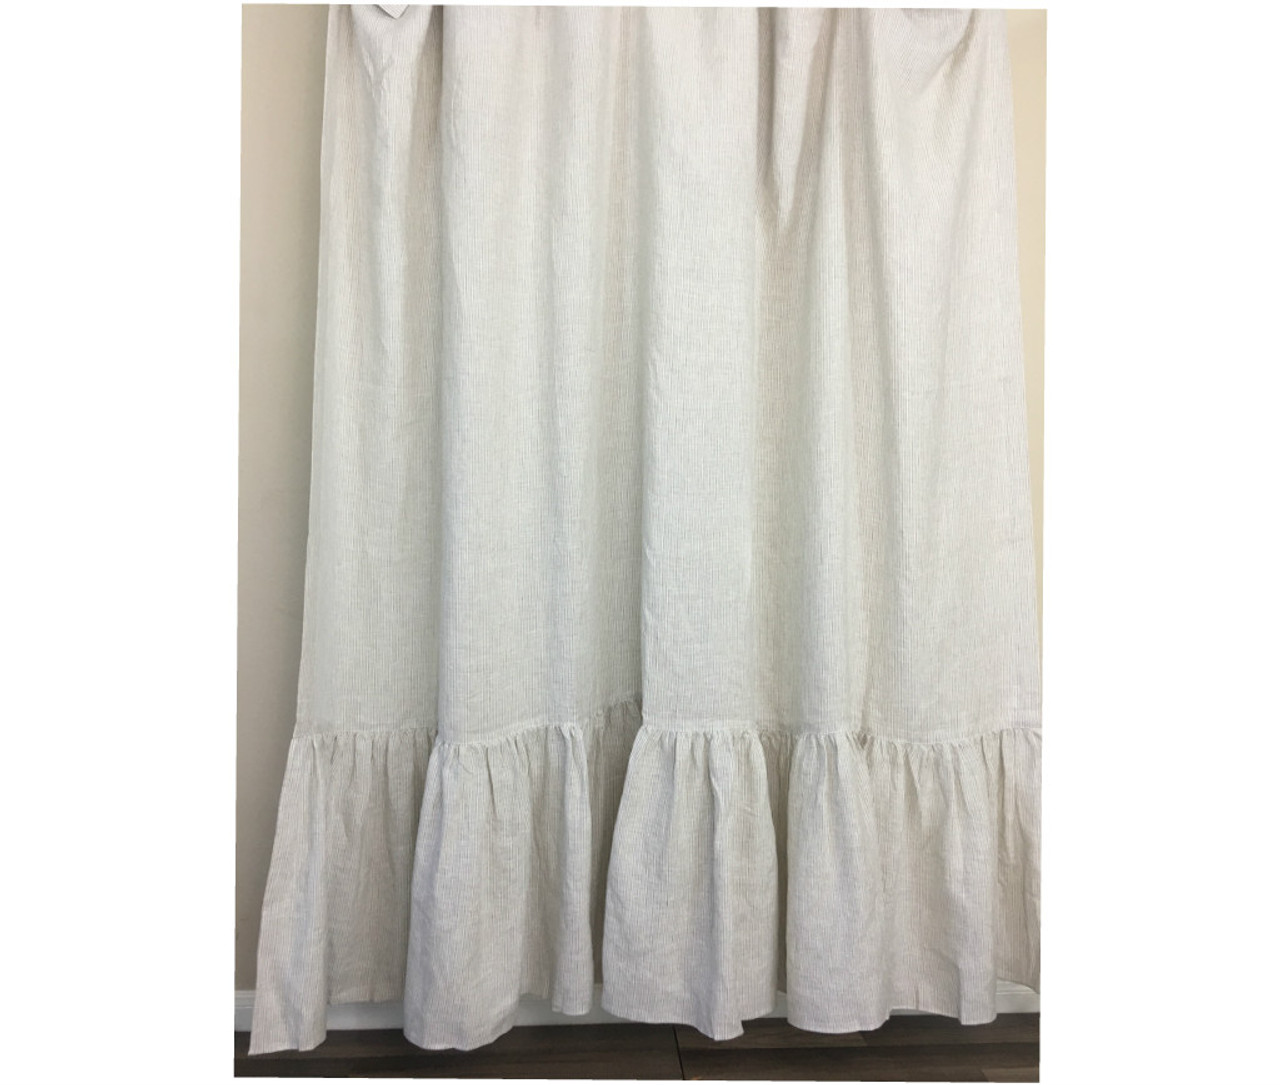 handcrafted curtains shower curtain navy white linen by striped and